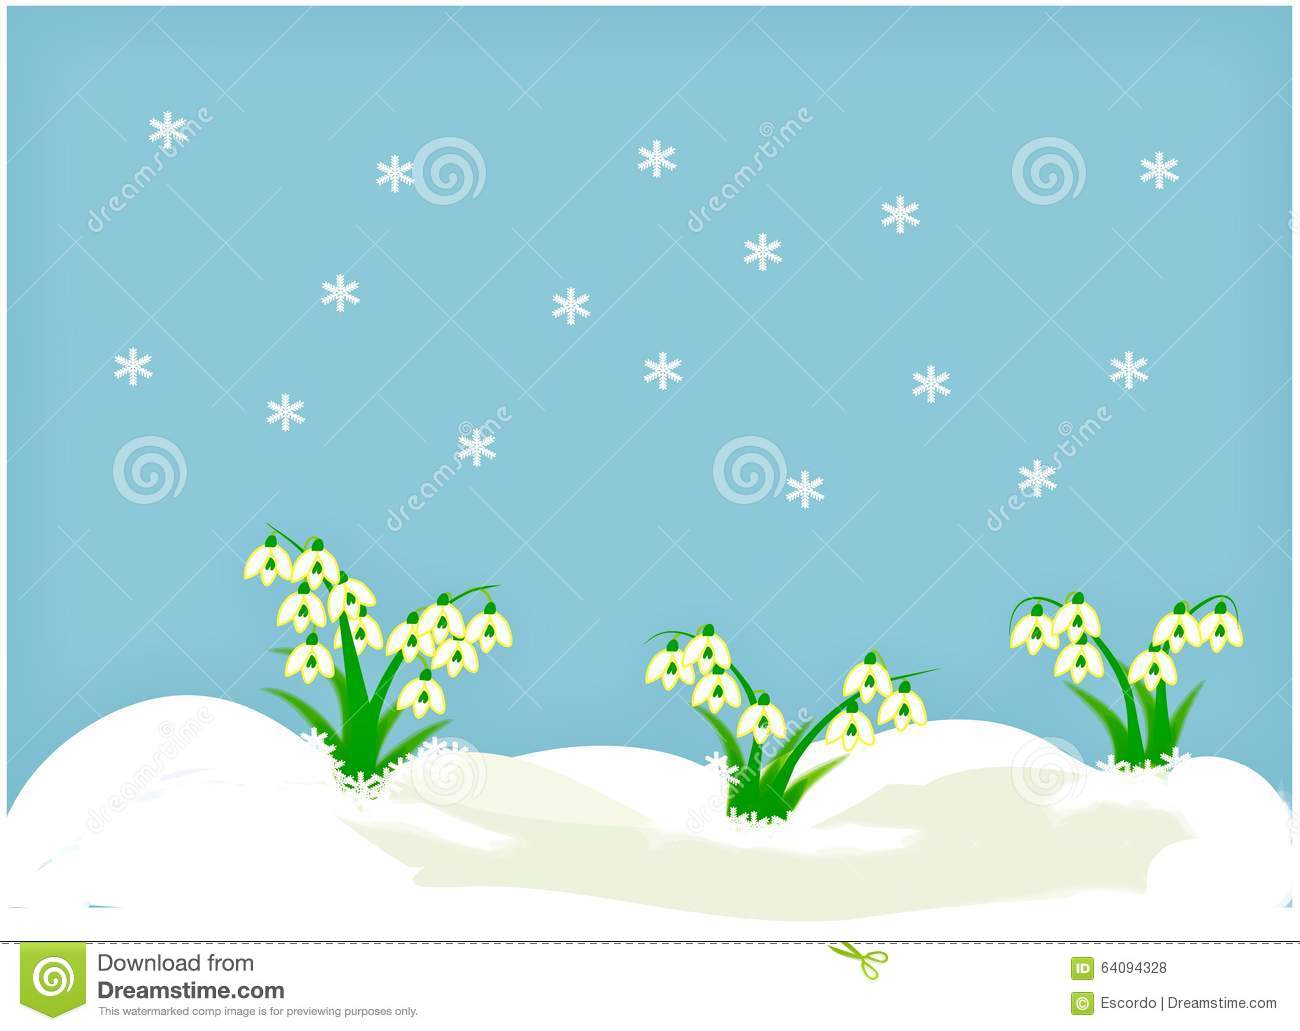 Clipart with snowdrops stock illustration. Illustration of ...